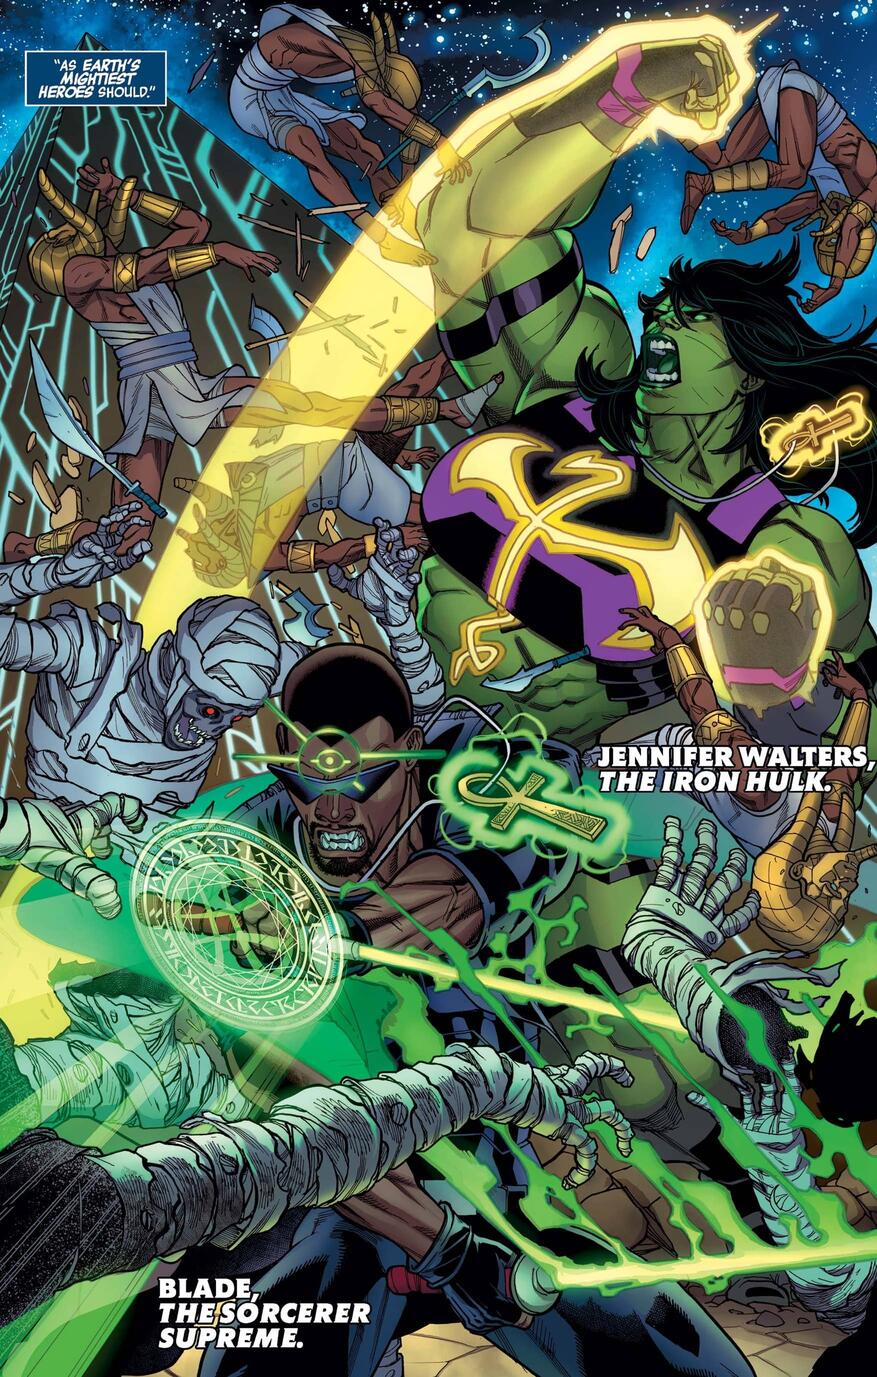 Blade as the Sorcerer Supreme with She-Hulk as Iron Fist.